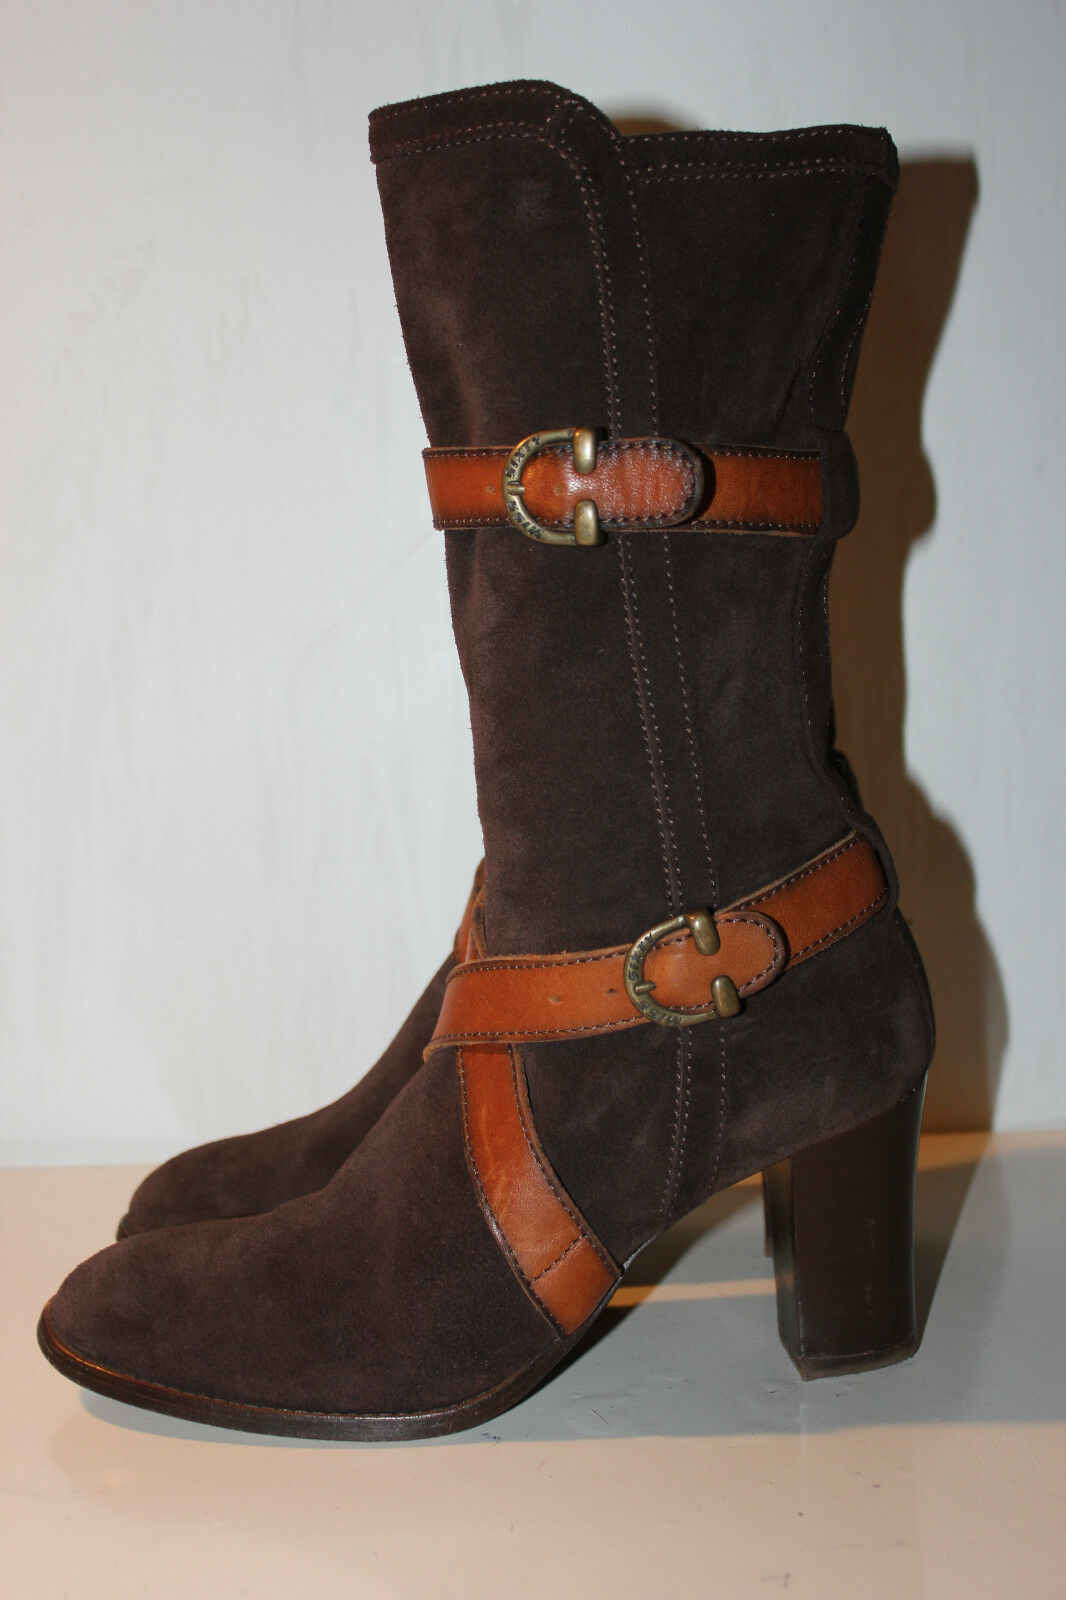 Miss Sixty Super Beautiful Brown Suede Ankle Boots, Size 37, Excellent Condition